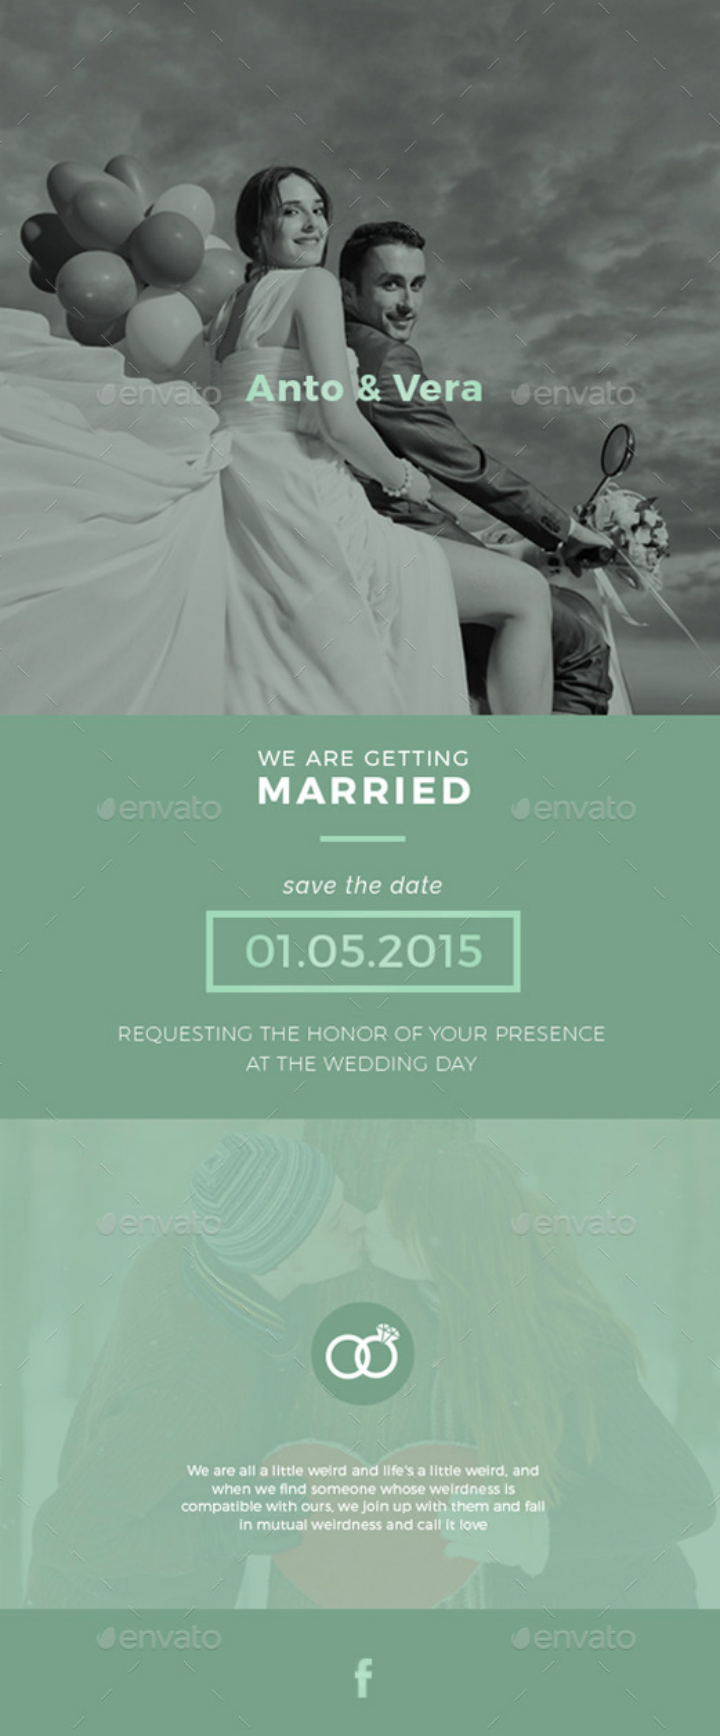 av-wedding-e-invitation-email-template